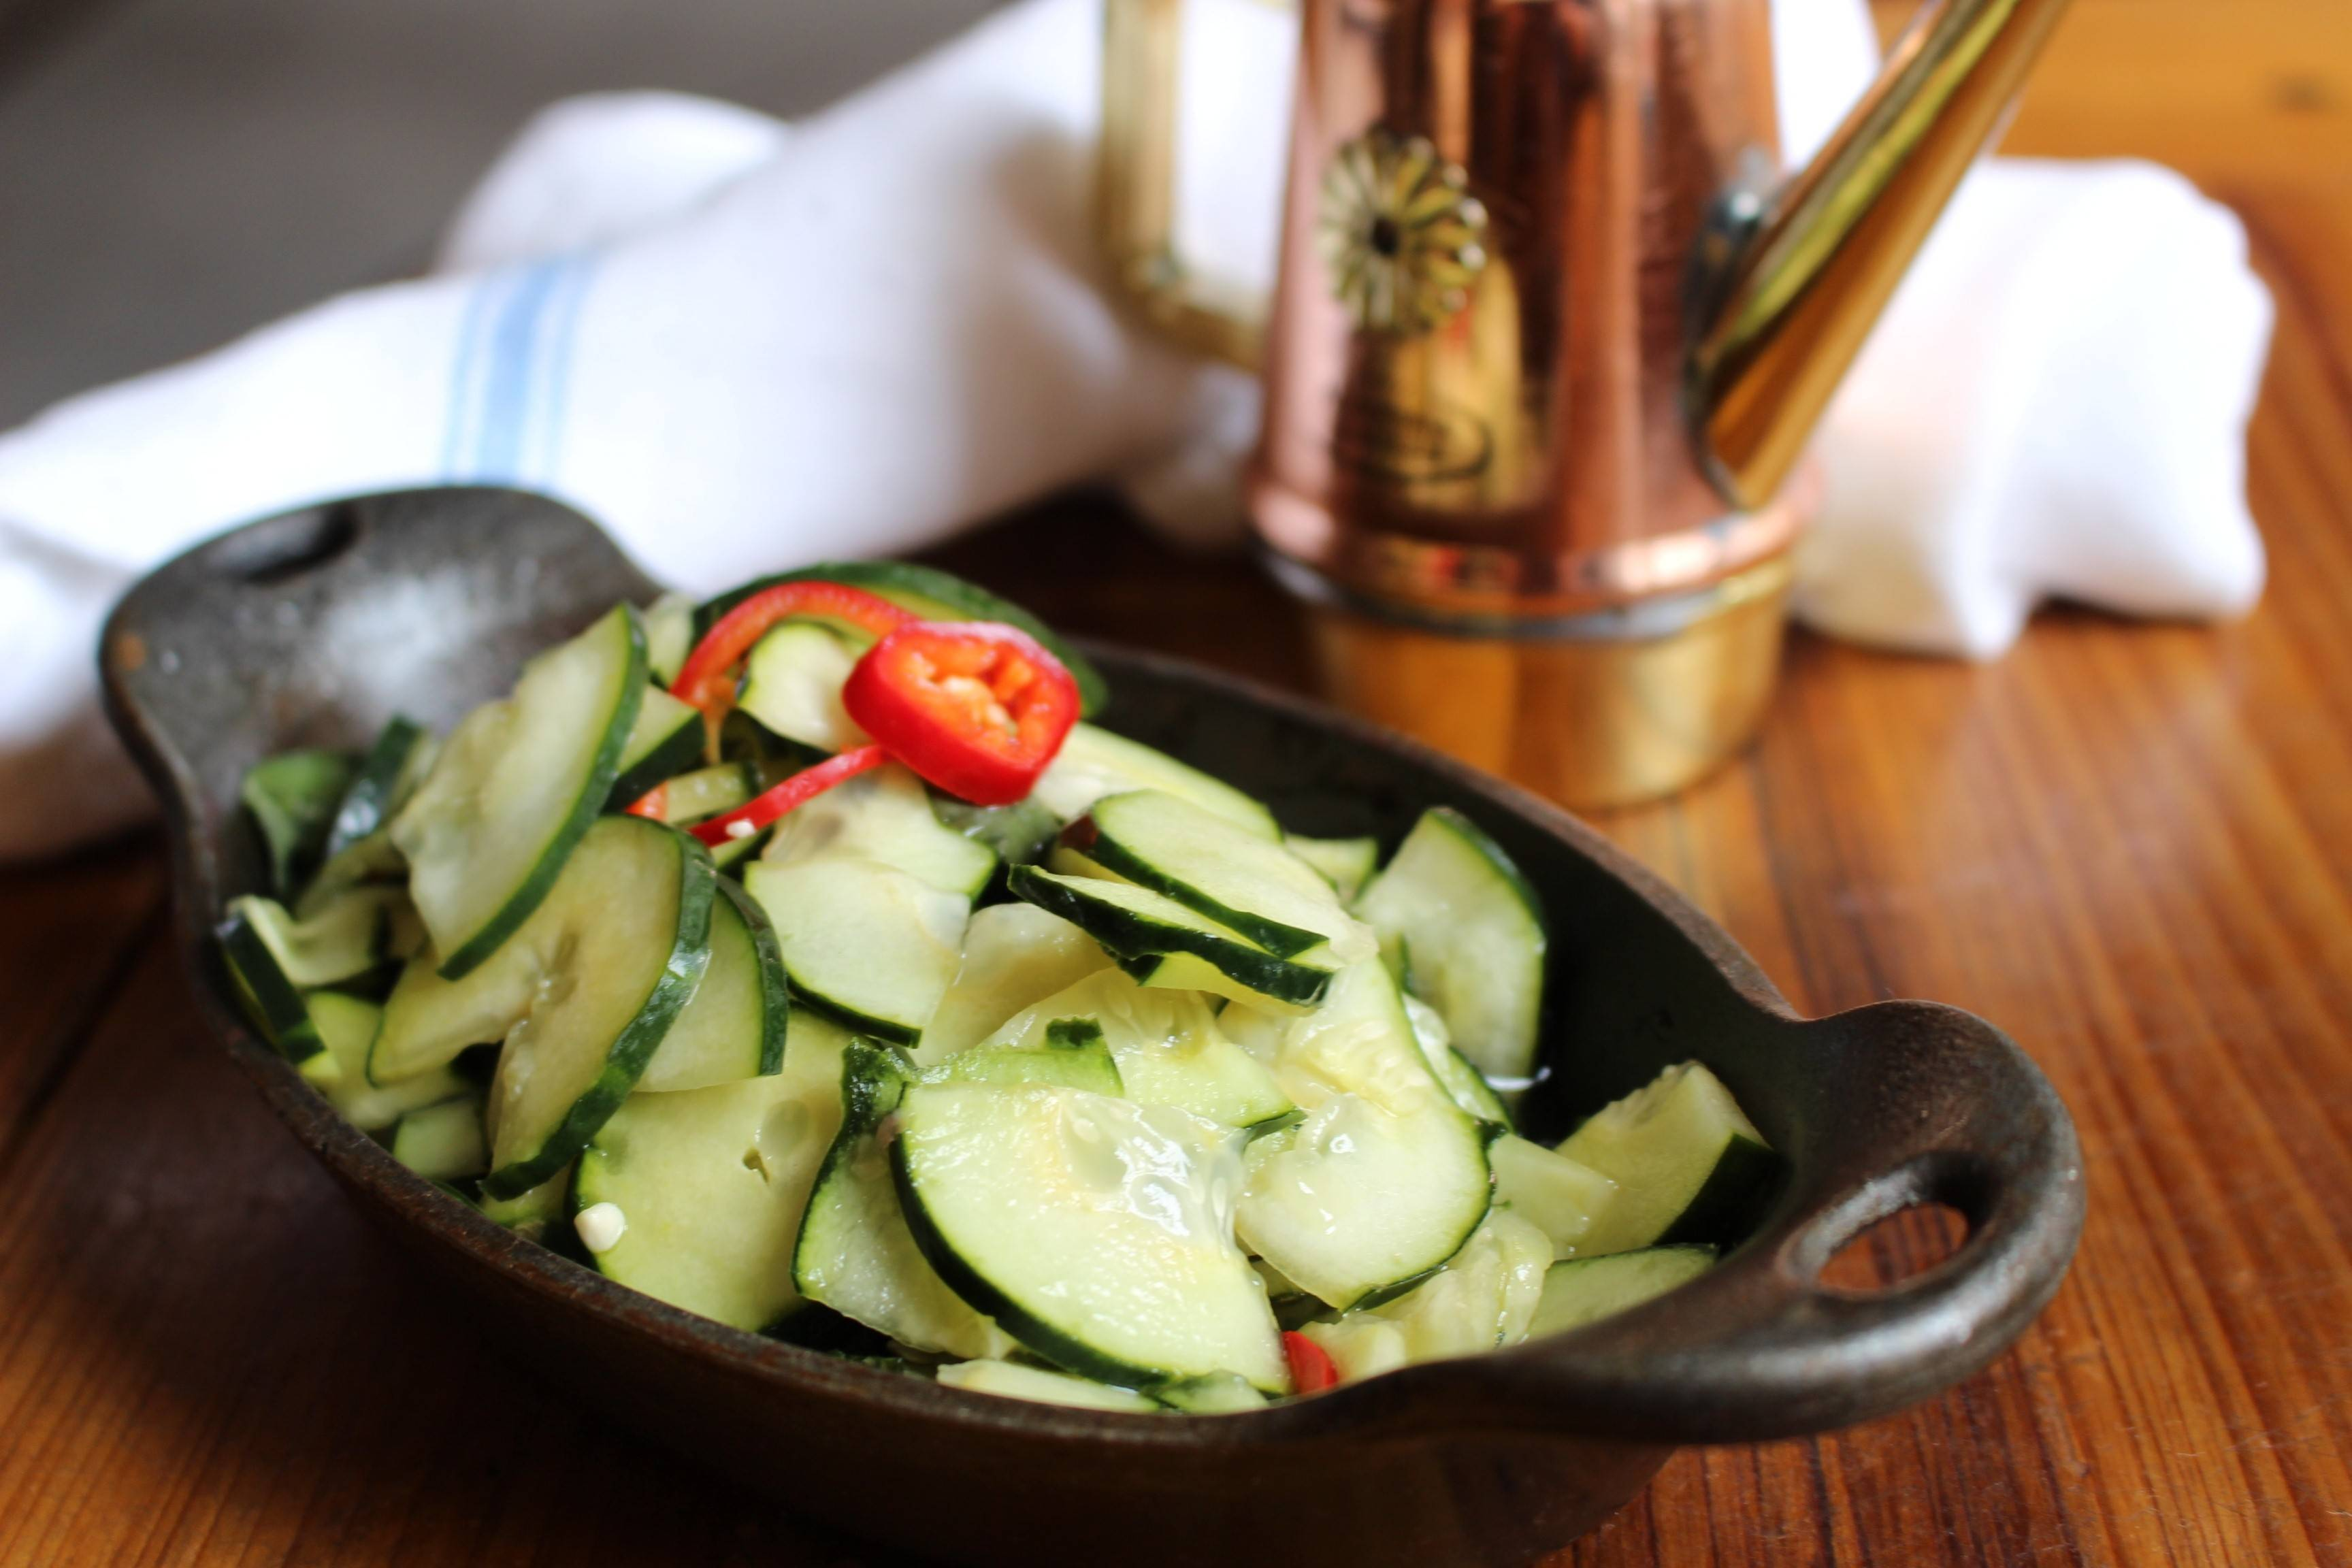 Basil and white wine transform cucumbers into a deliciously refreshing accompaniment to sausages and antipasto.